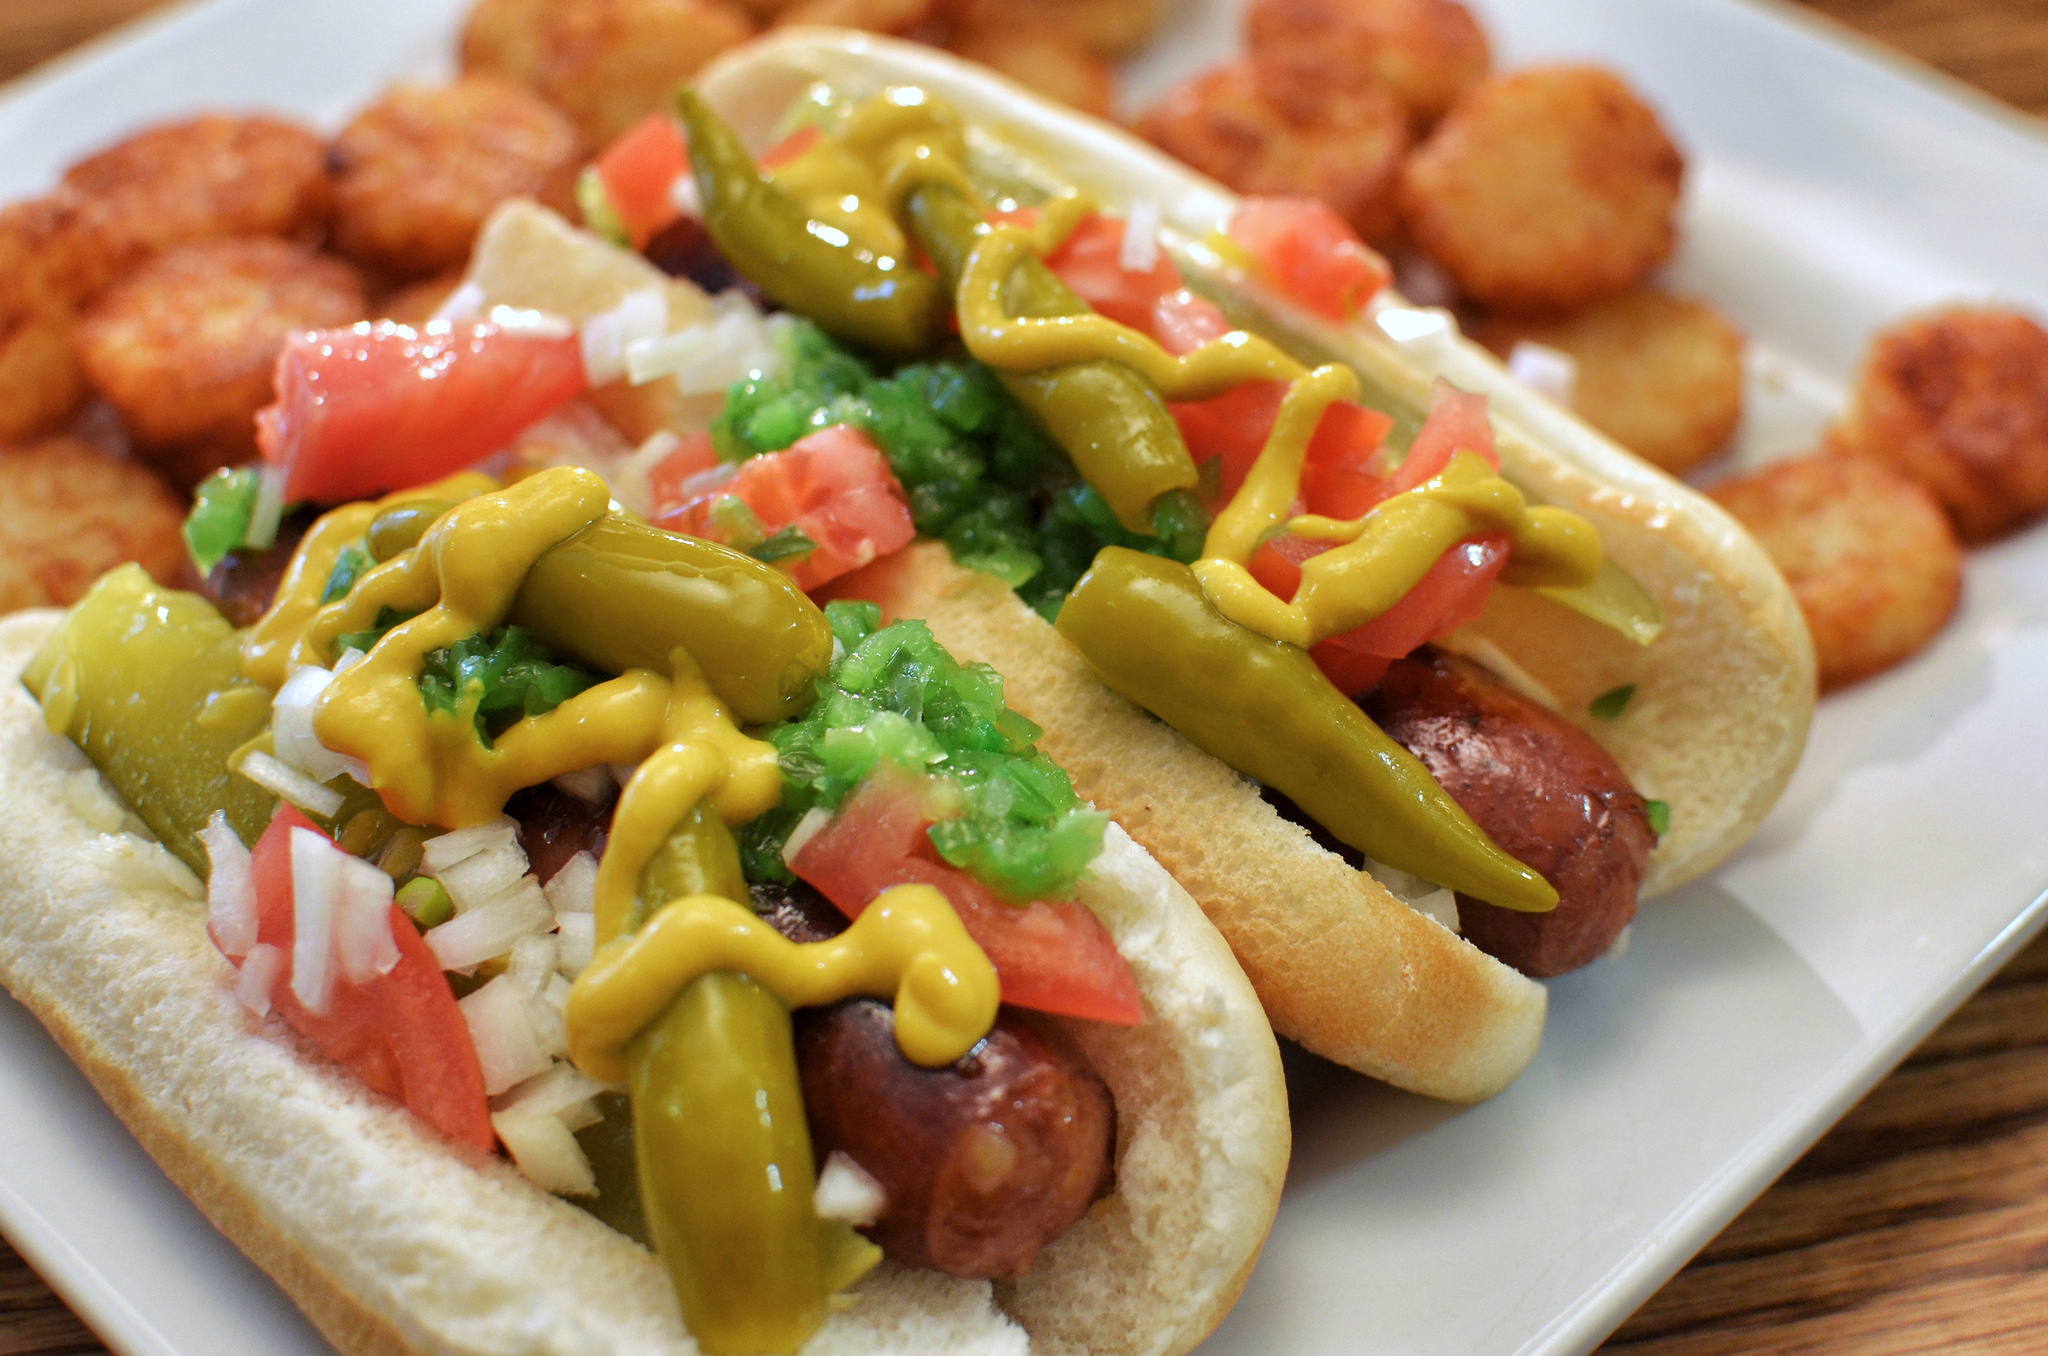 """Chicago Style Hot Dogs"" by Jeffreyw via Flickr Creative Commons"